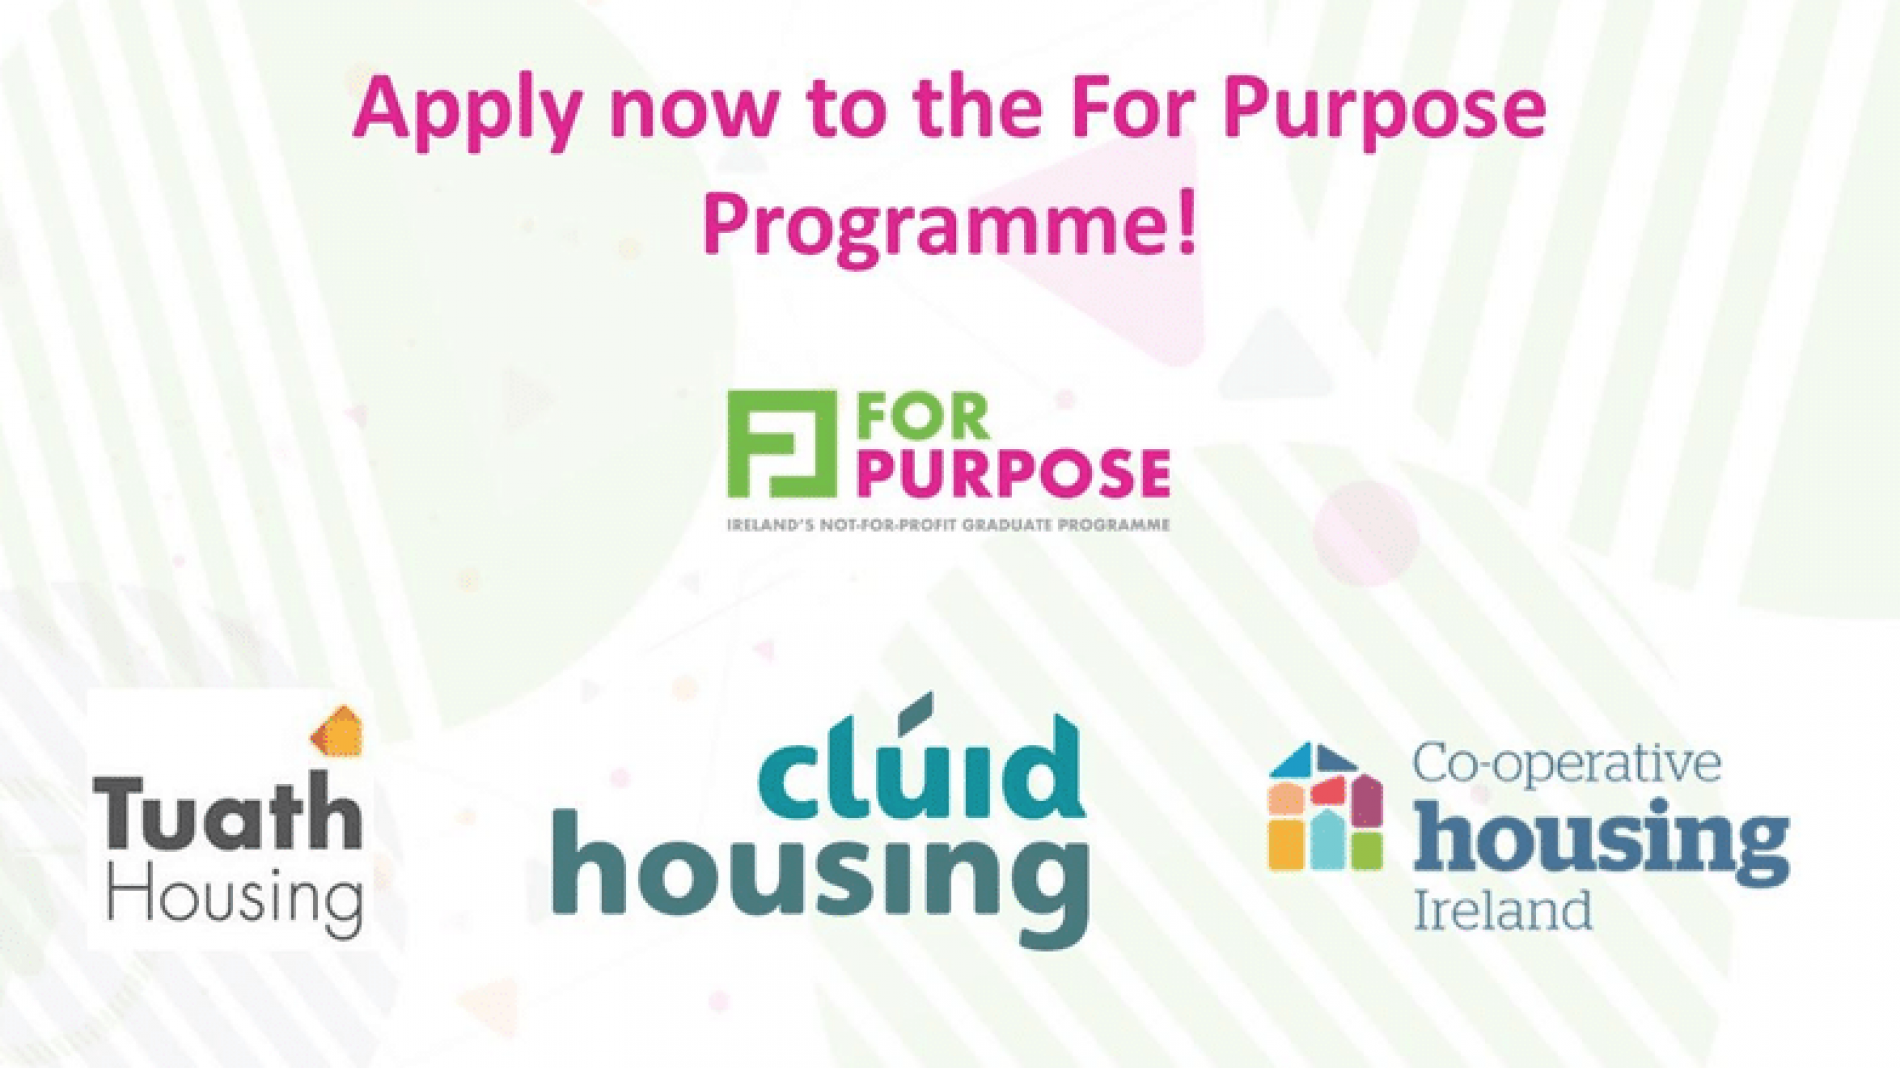 Apply for the For Purpose Social Housing Programme for Graduates